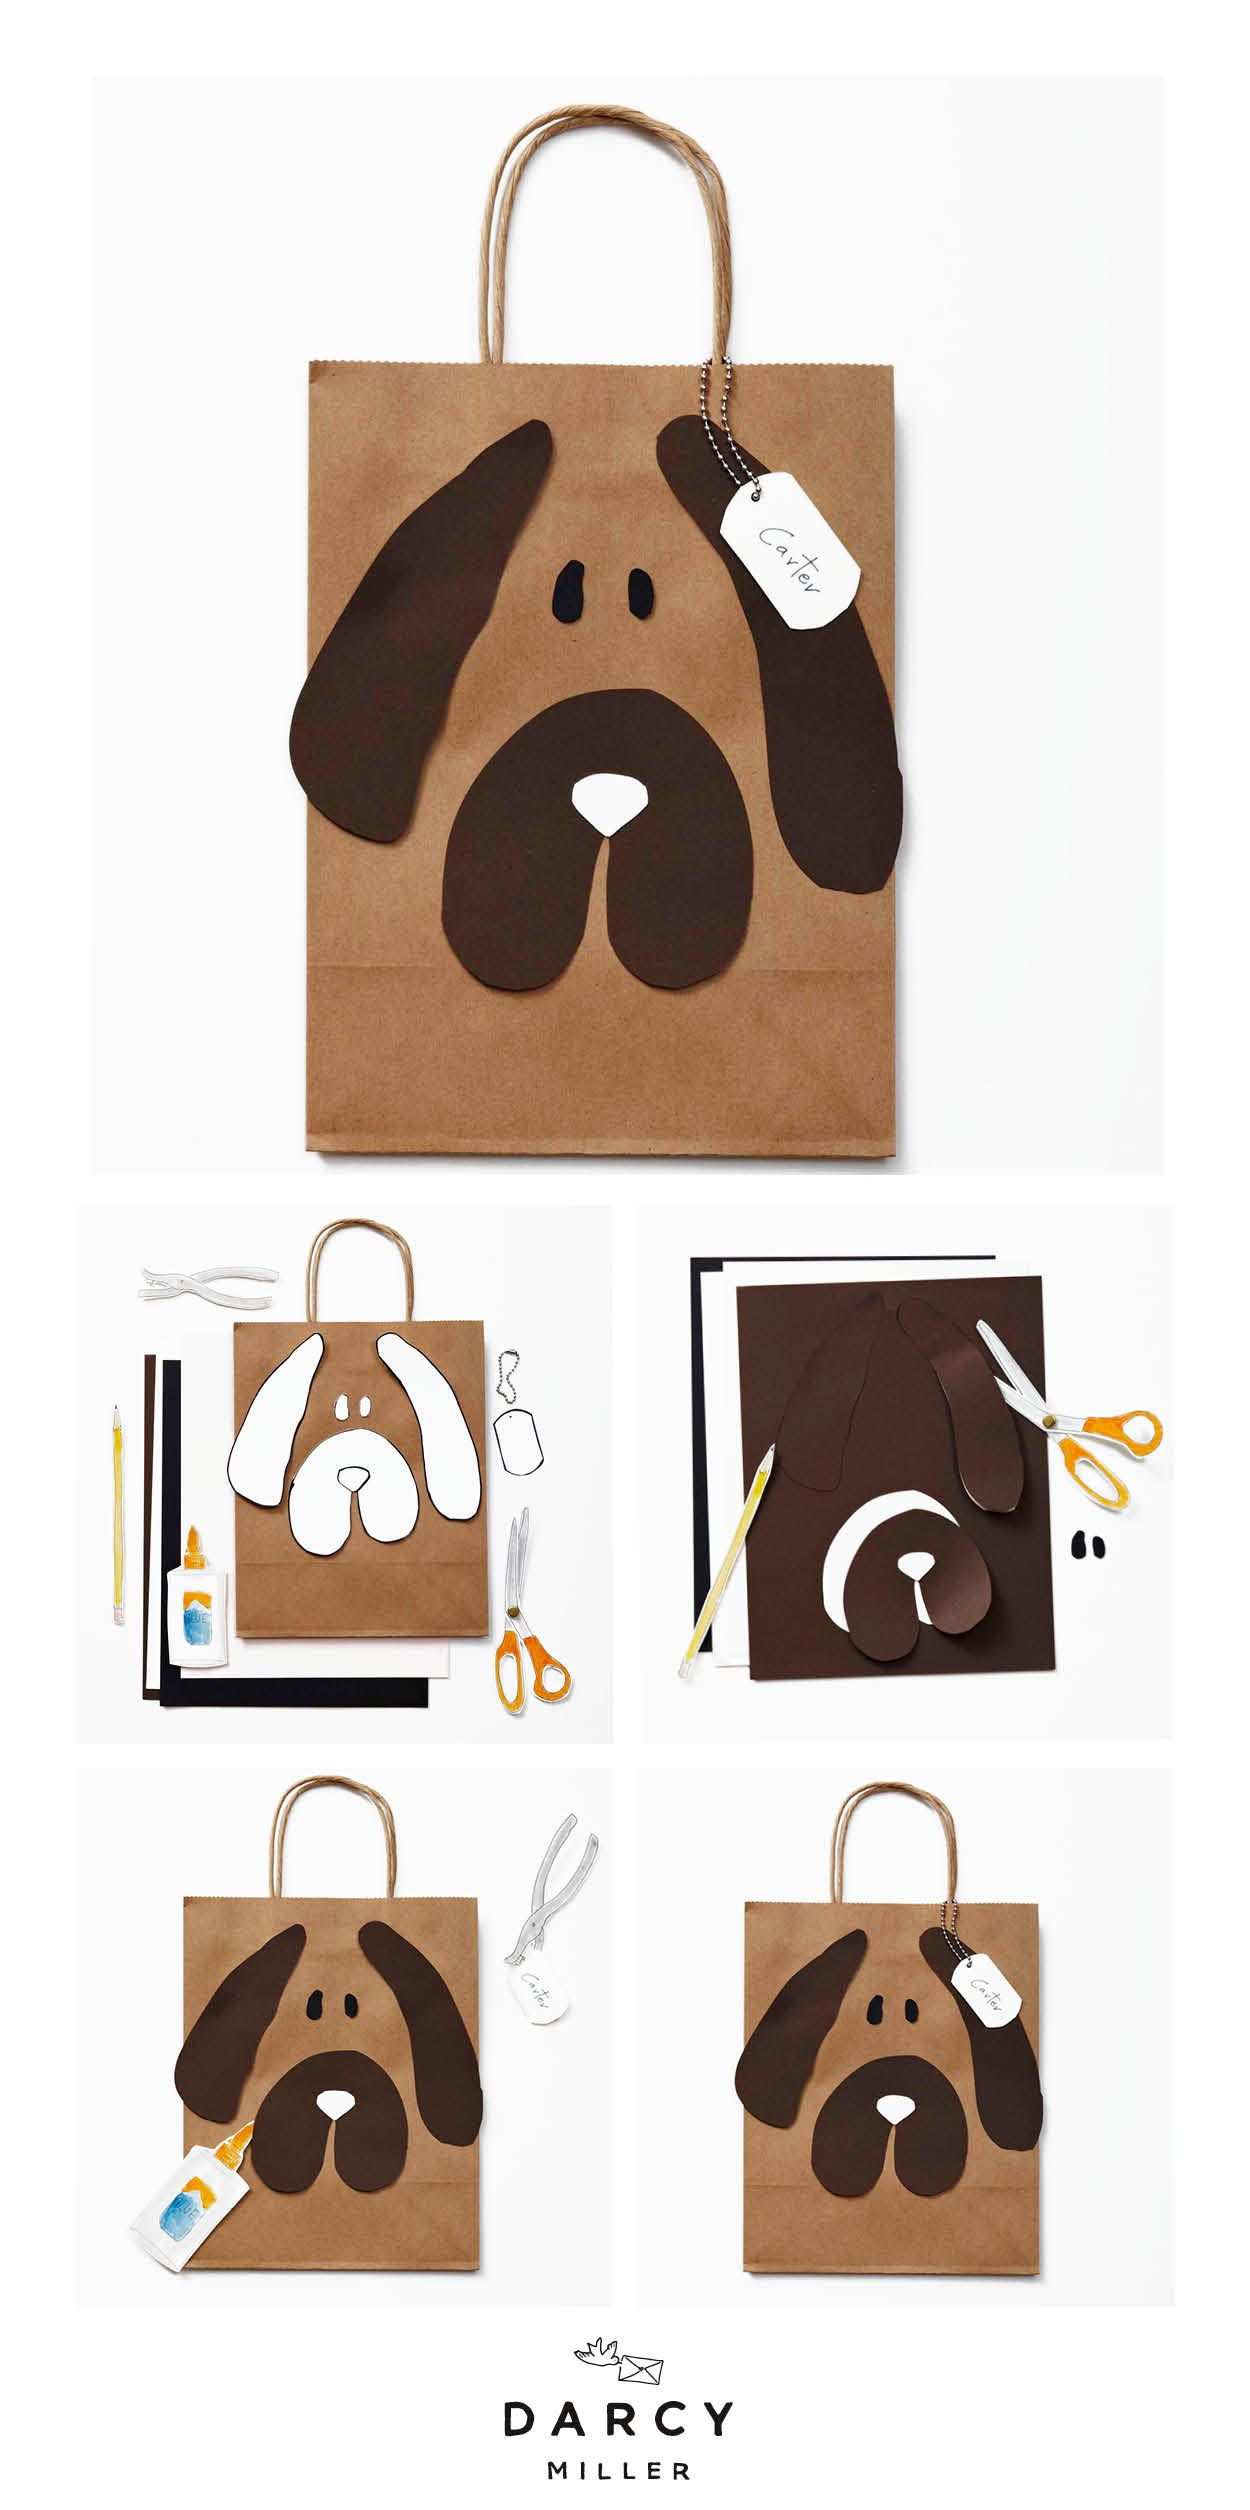 Download Doggie Bags Darcy Miller Designs Diy Dog Gifts Diy Party Bags Brown Bag Gift